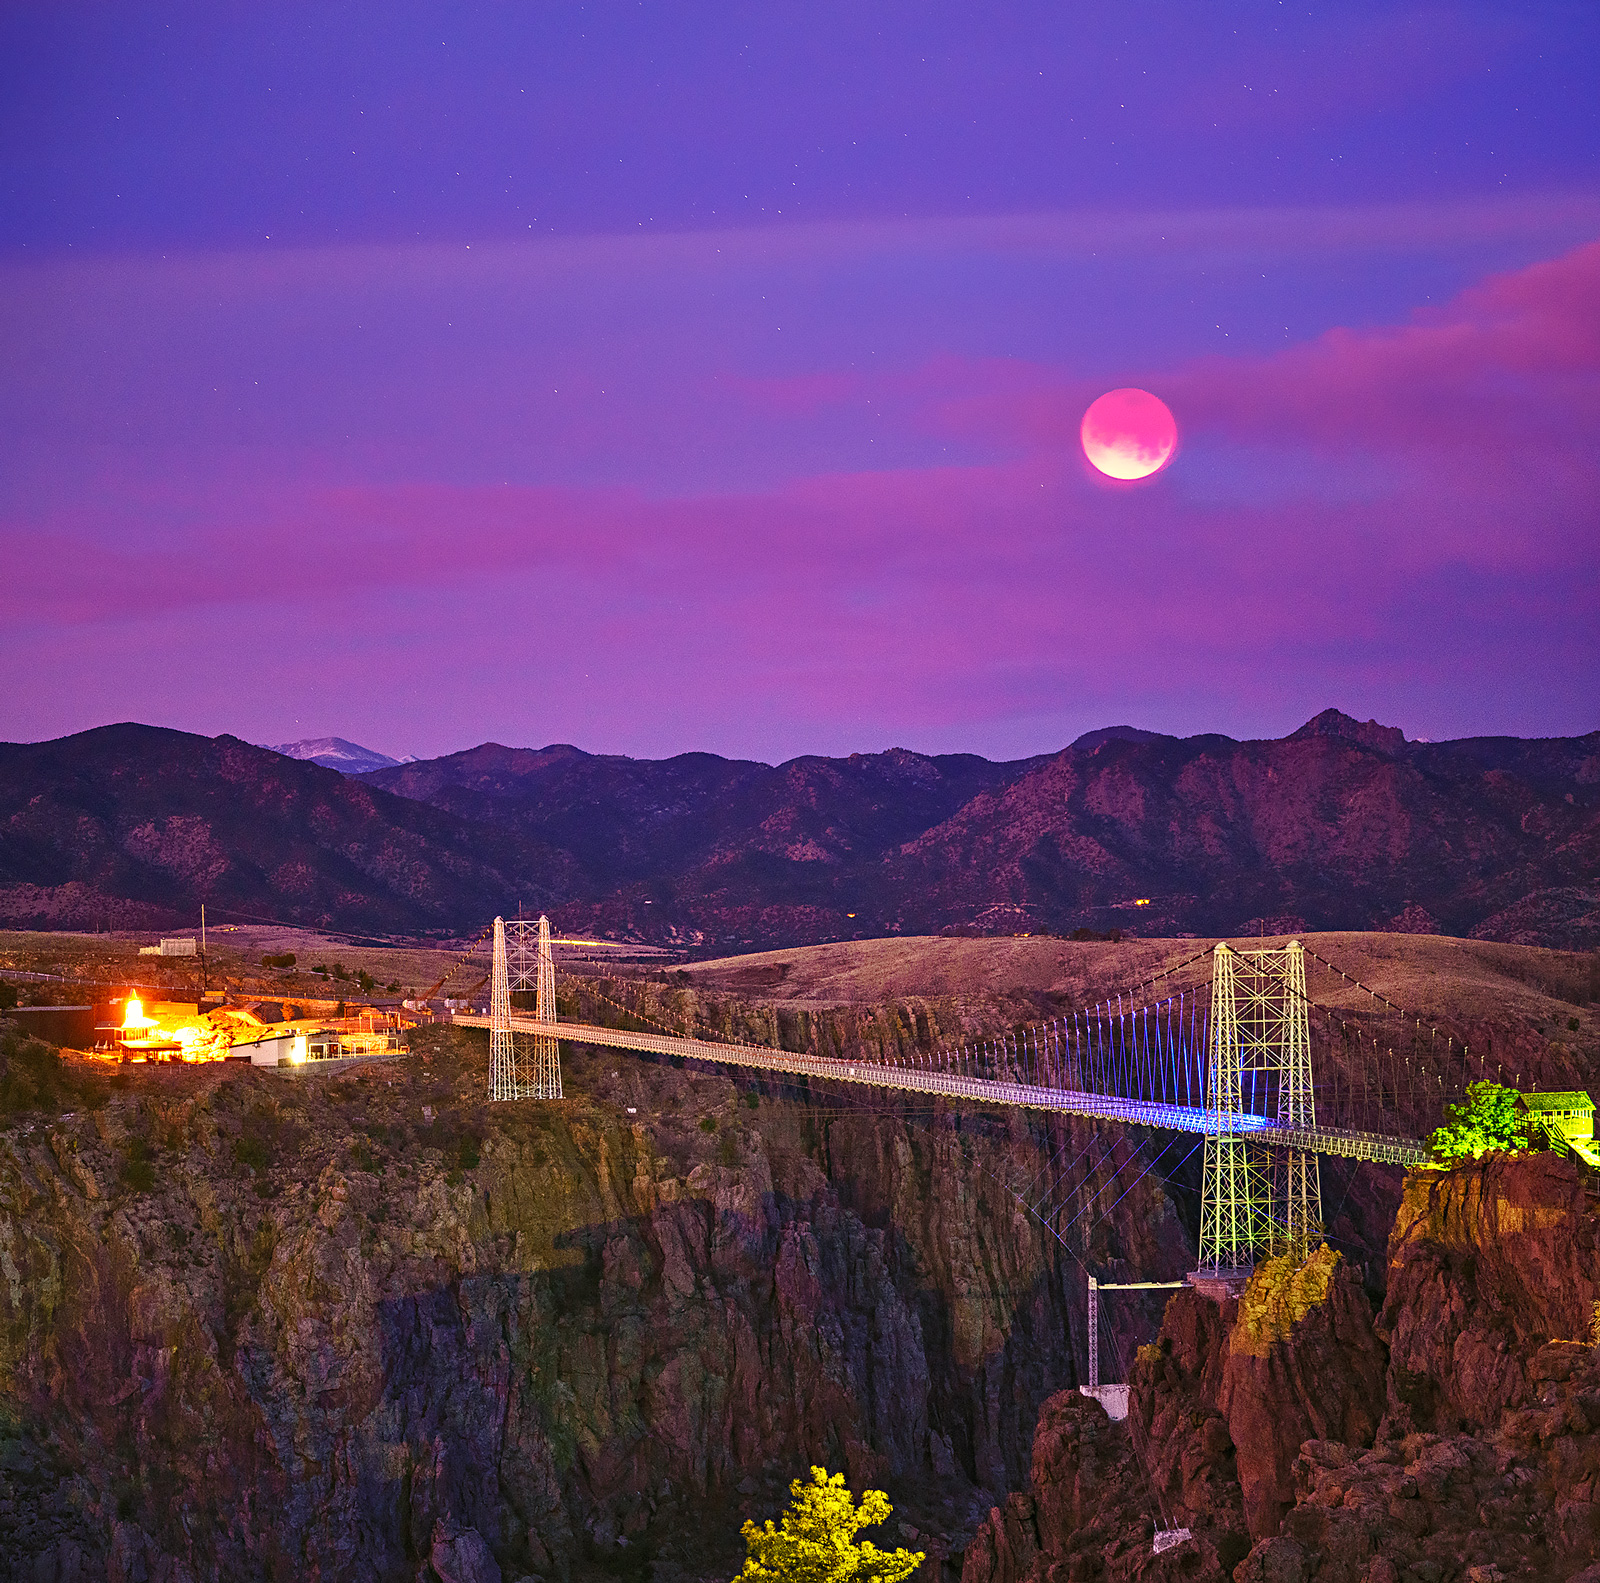 Royal Gorge,sunrise,eclipse,lunar eclipse, photo